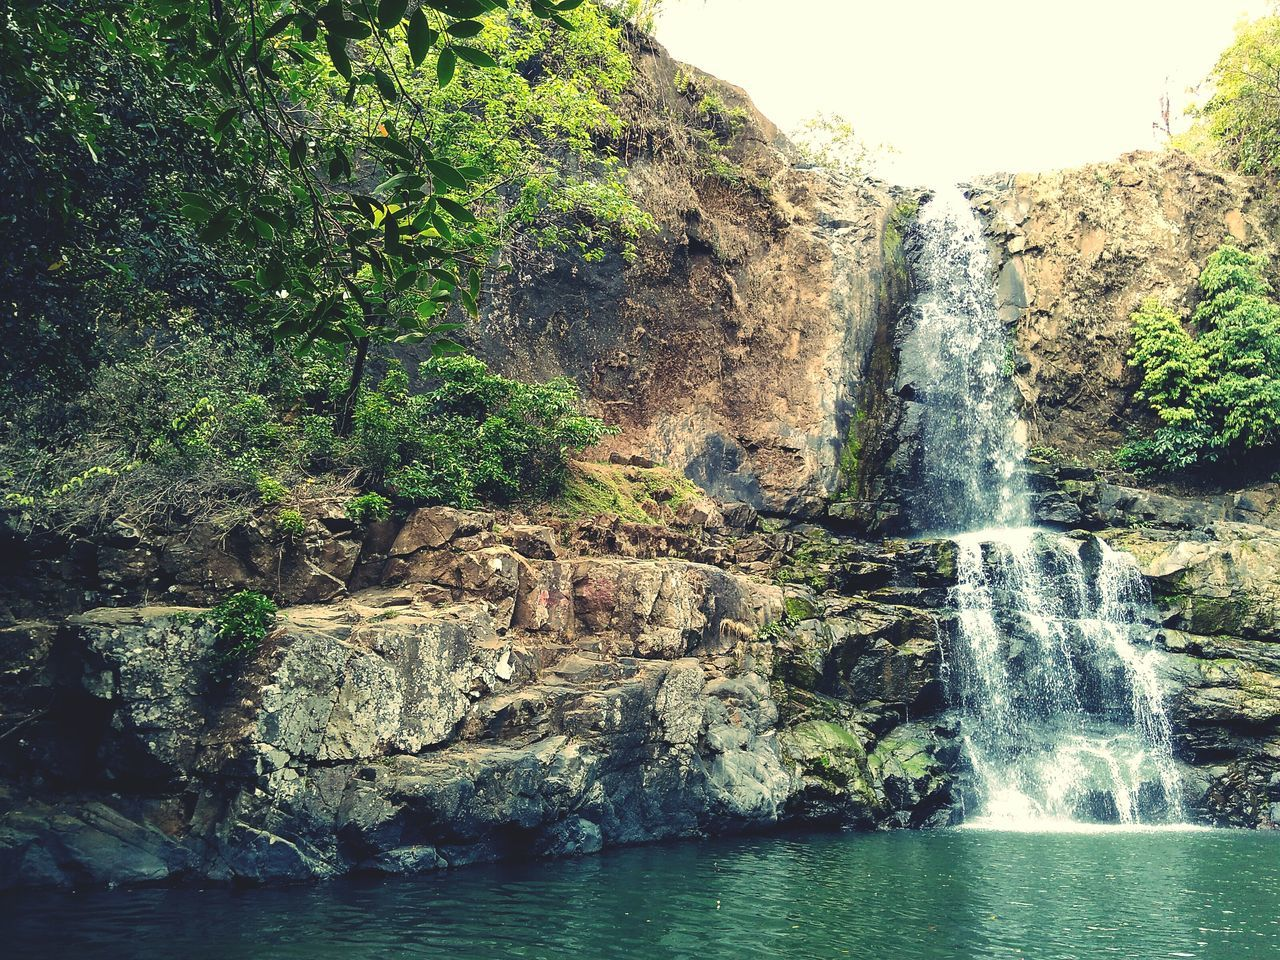 waterfall, nature, water, beauty in nature, cliff, no people, scenics, outdoors, day